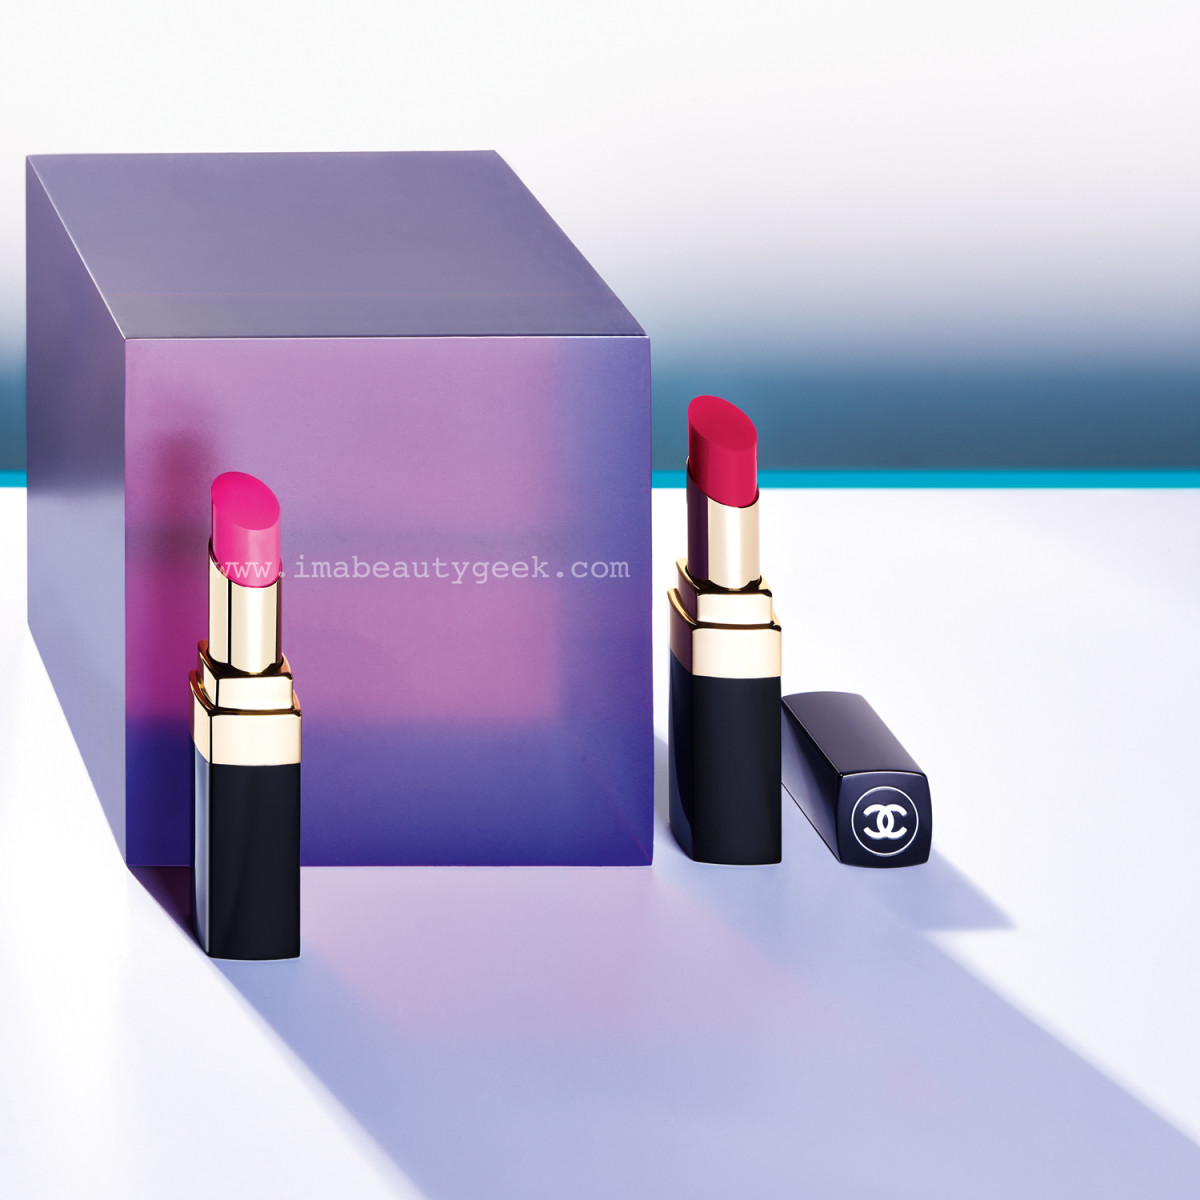 Chanel Spring 2015 LA Sunrise collection: Rouge Coco Shine in Mighty and Energy